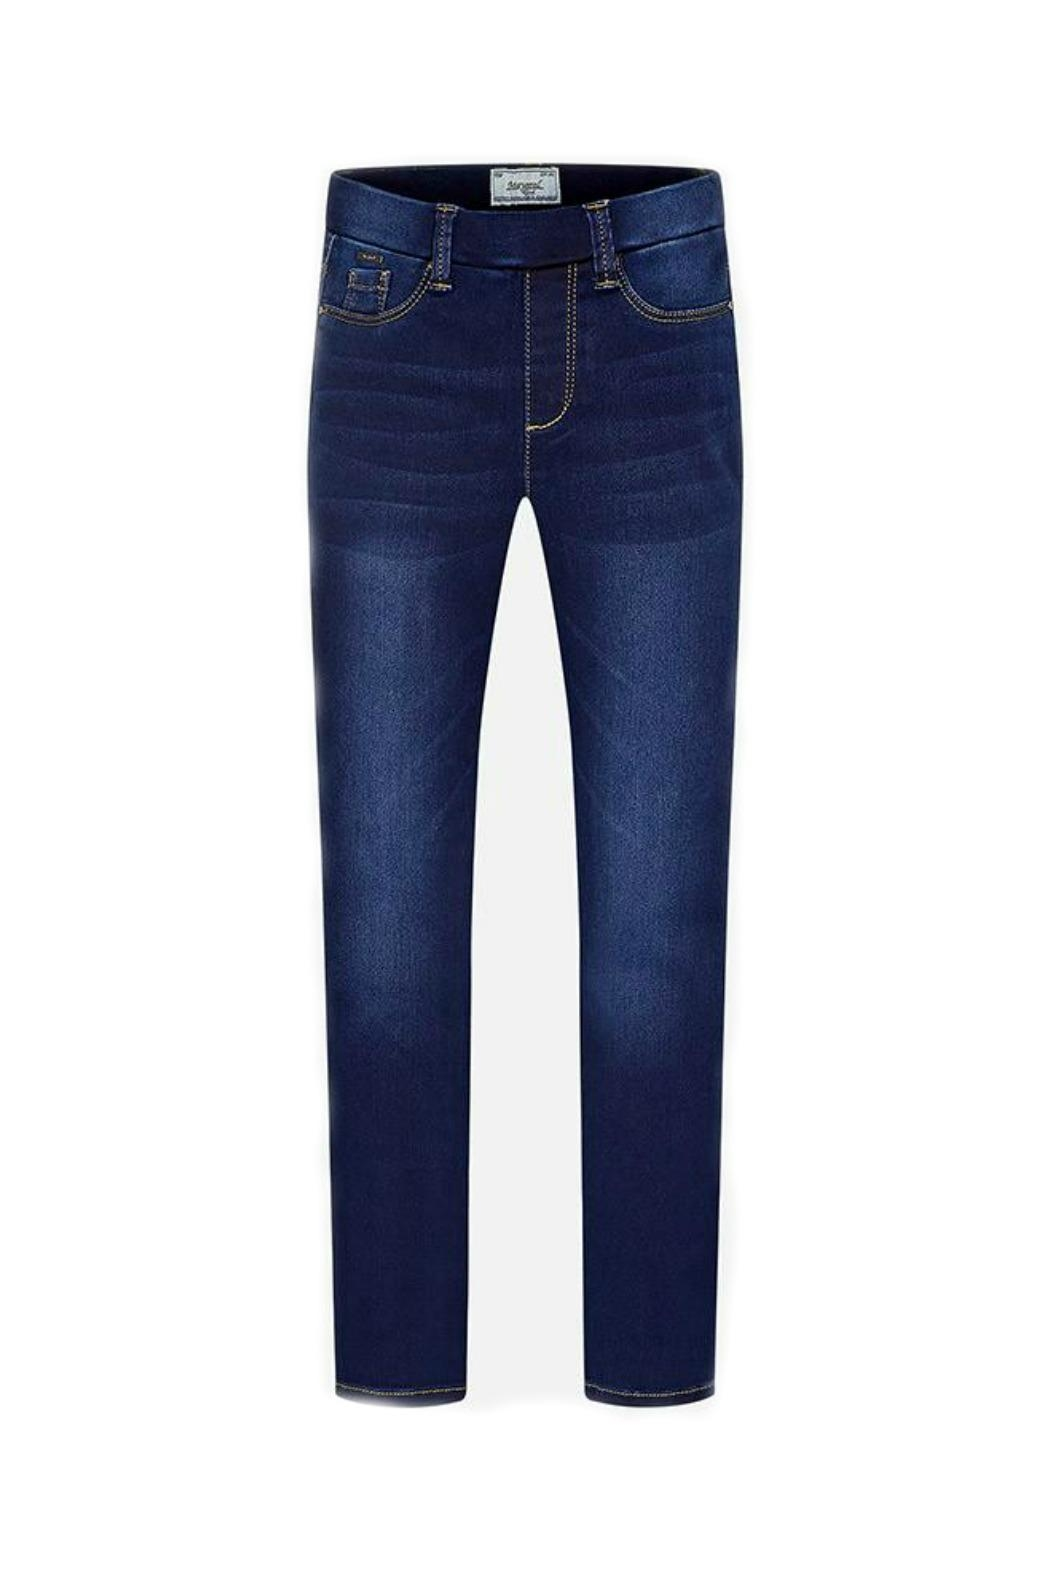 Mayoral Girls Skinny-Fit Denim-Jeggings - Main Image